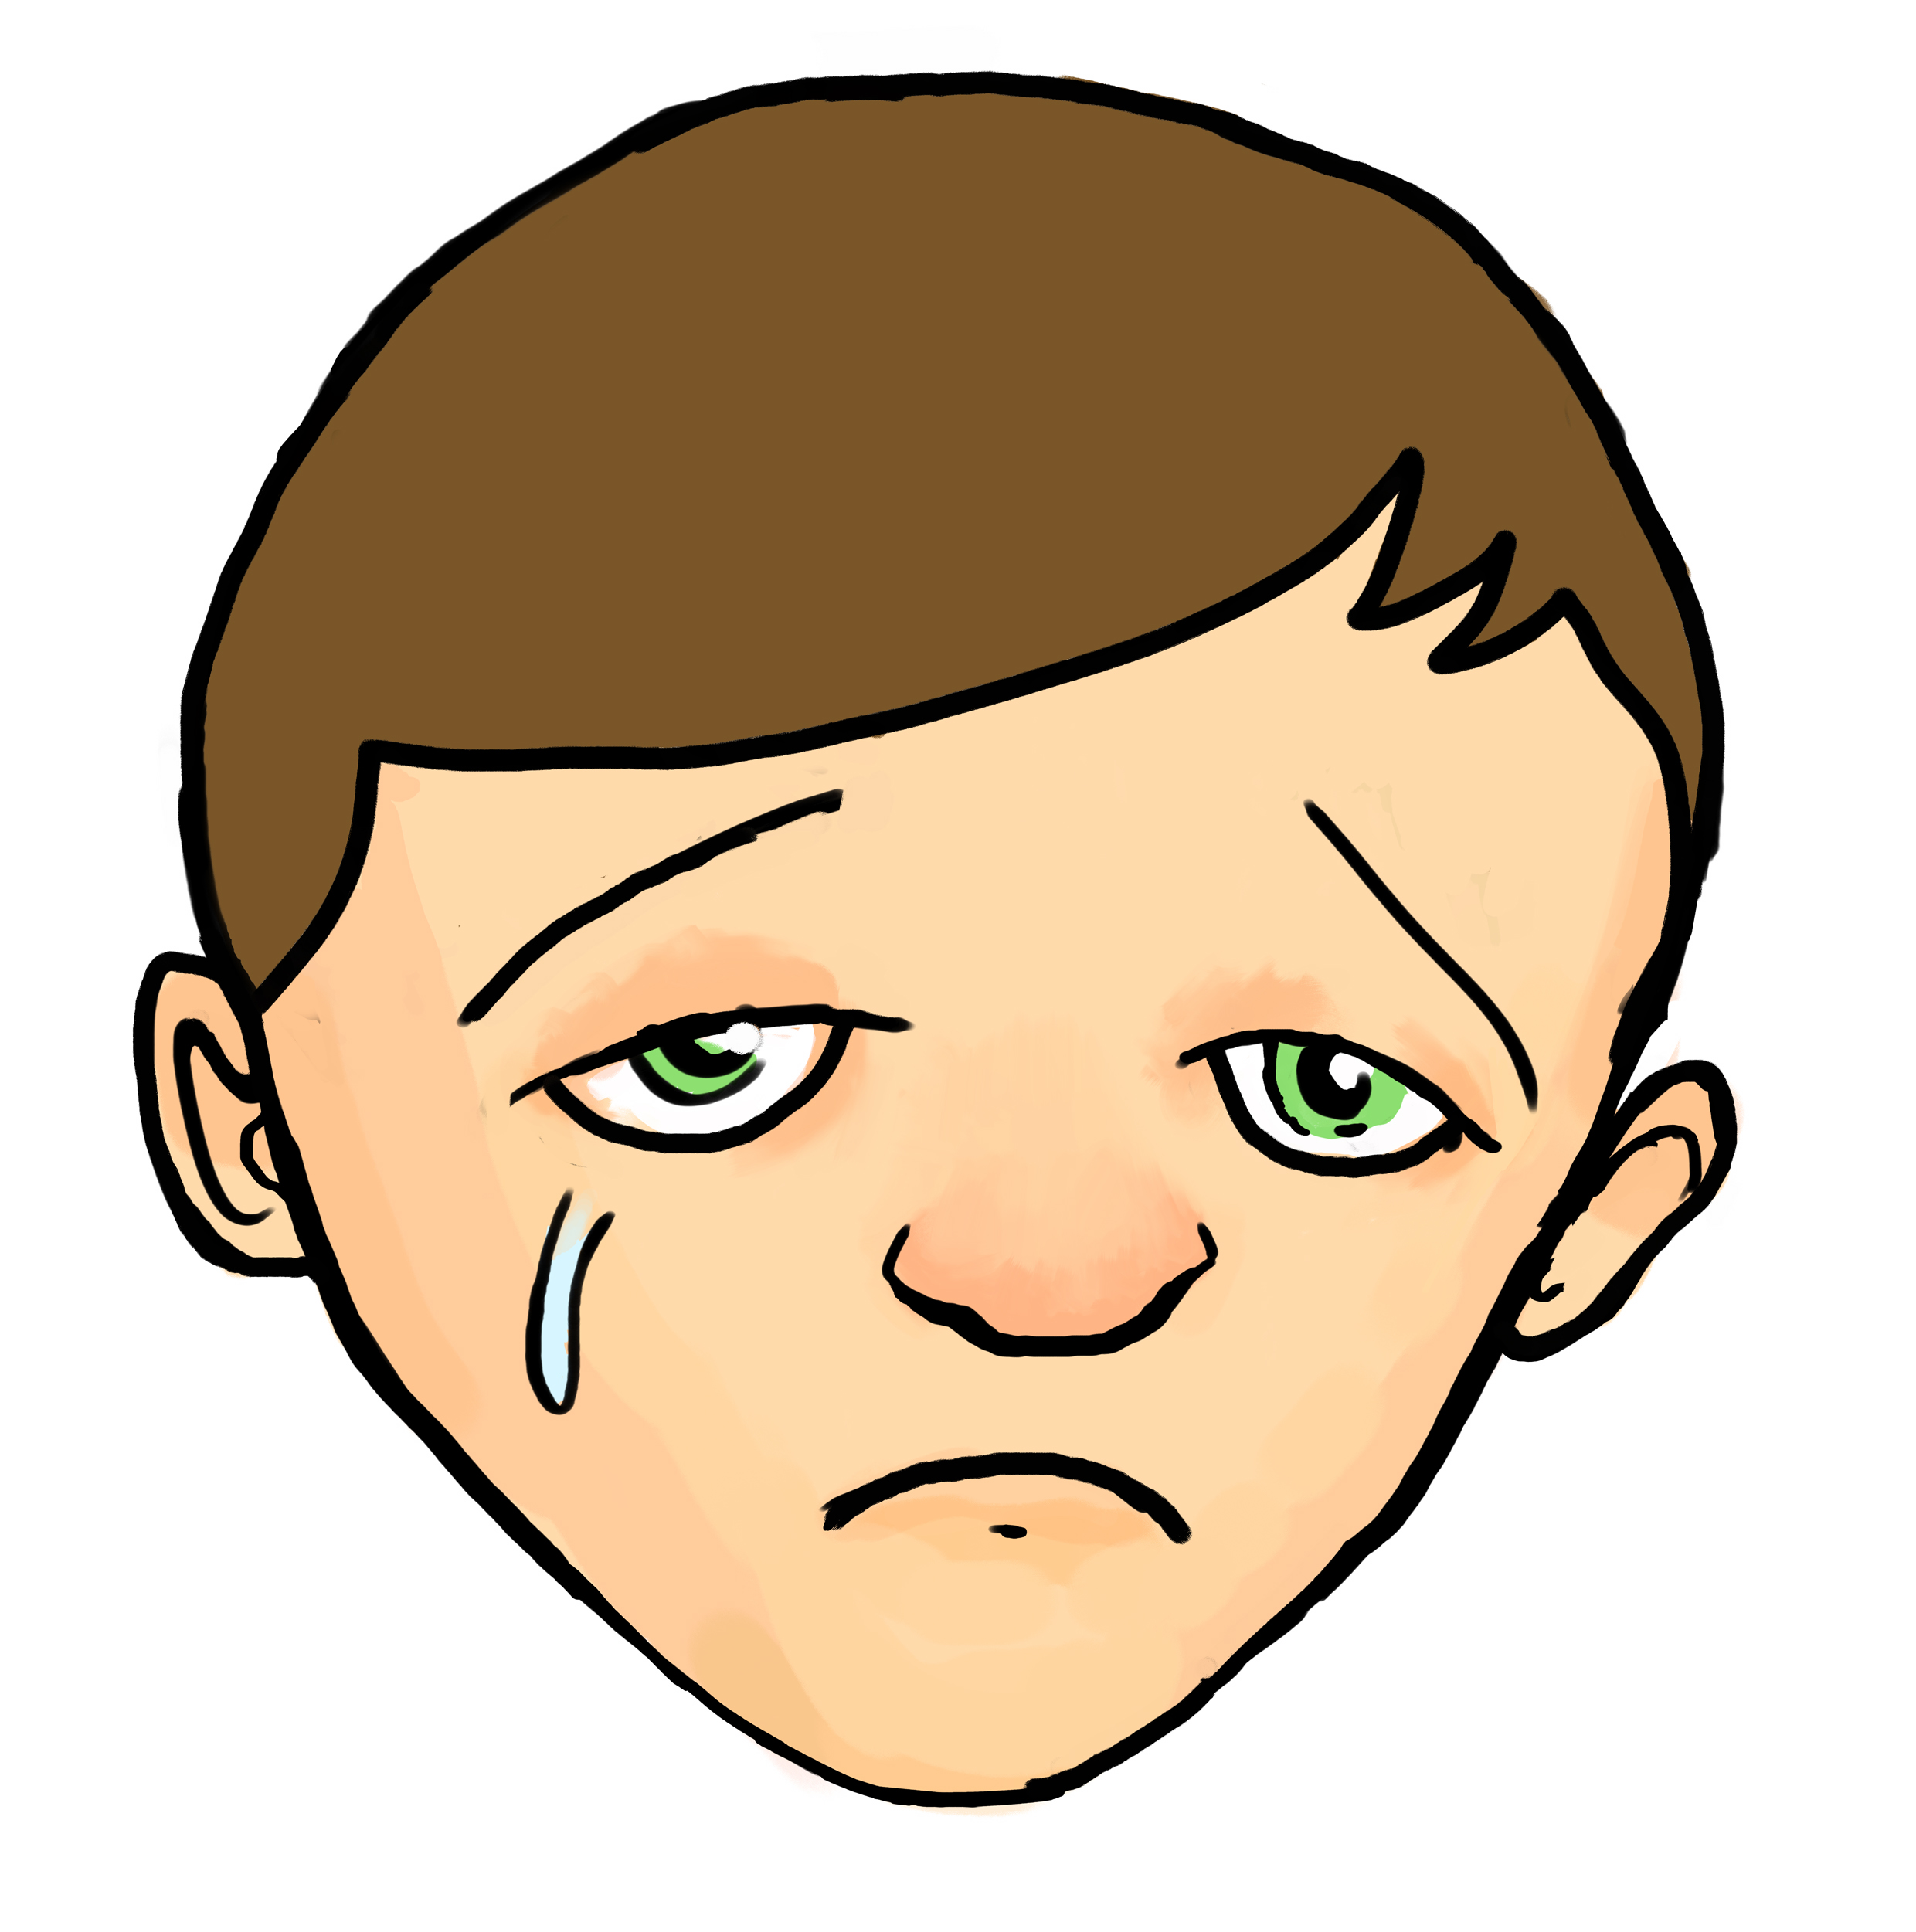 Line Drawing Of Sad Face : Drawings of sad faces clipart best